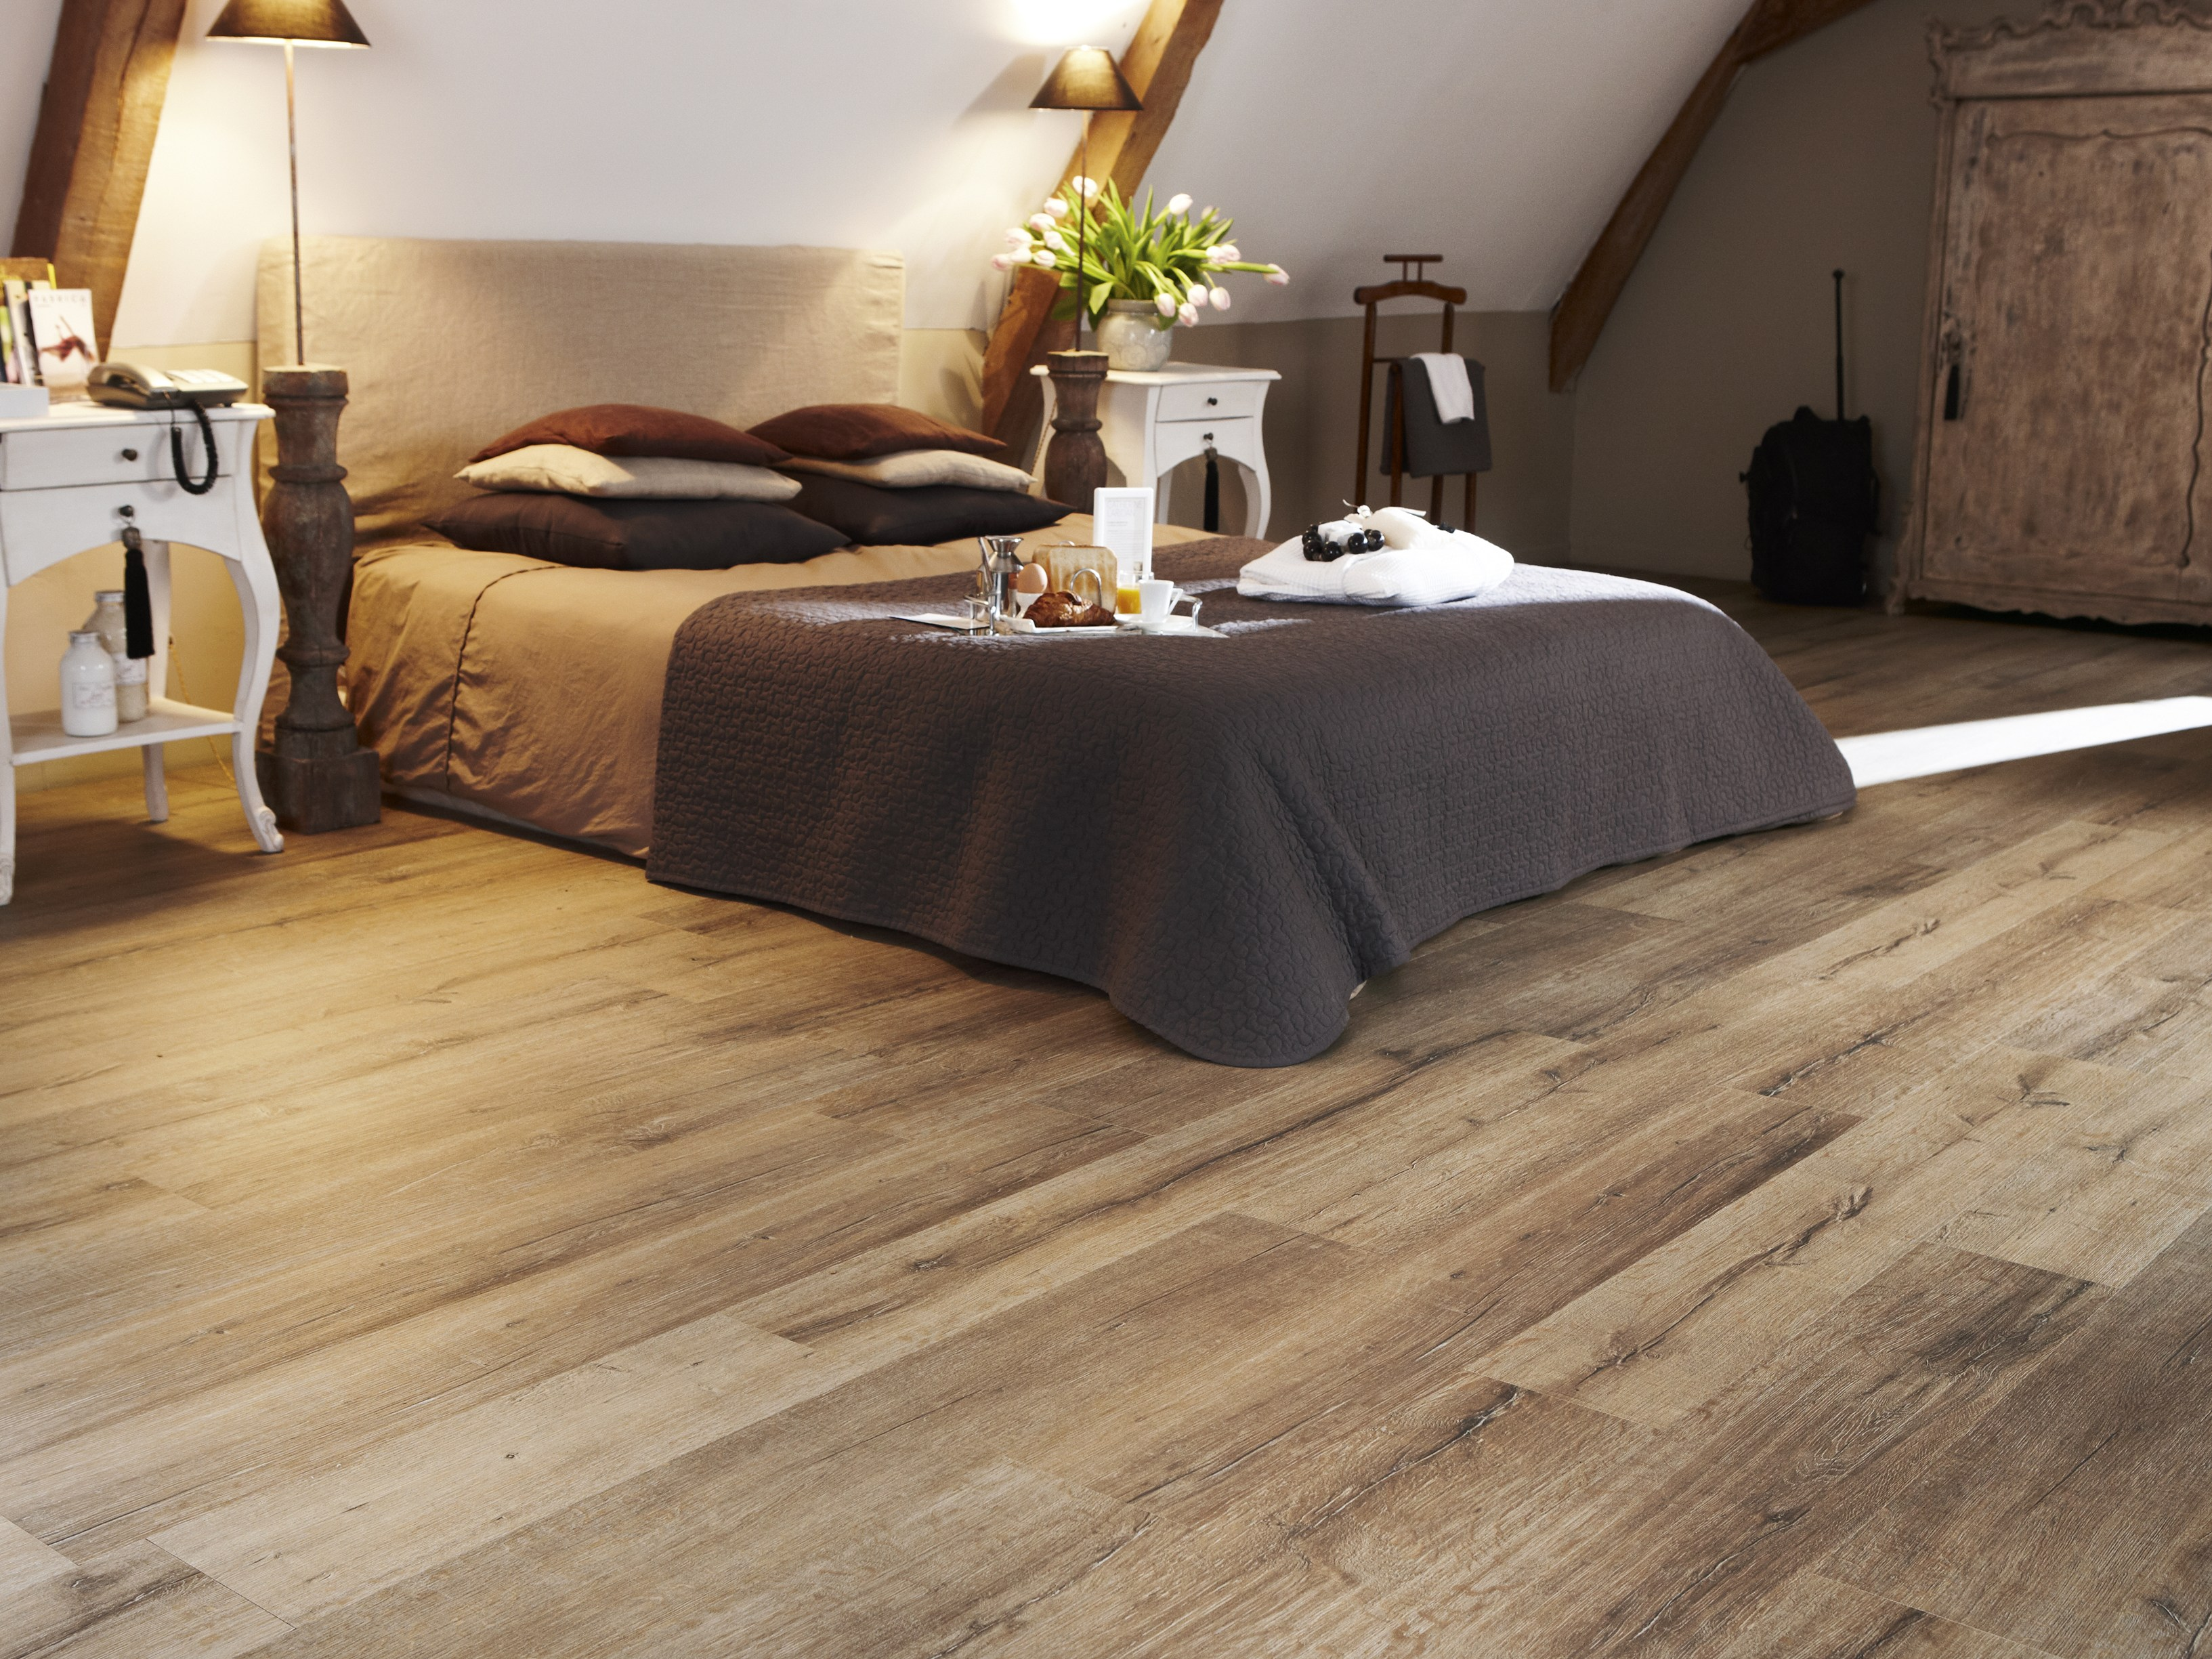 Suelos Laminados Tarkett Pavimenti In Legno Tarkett Media Contract